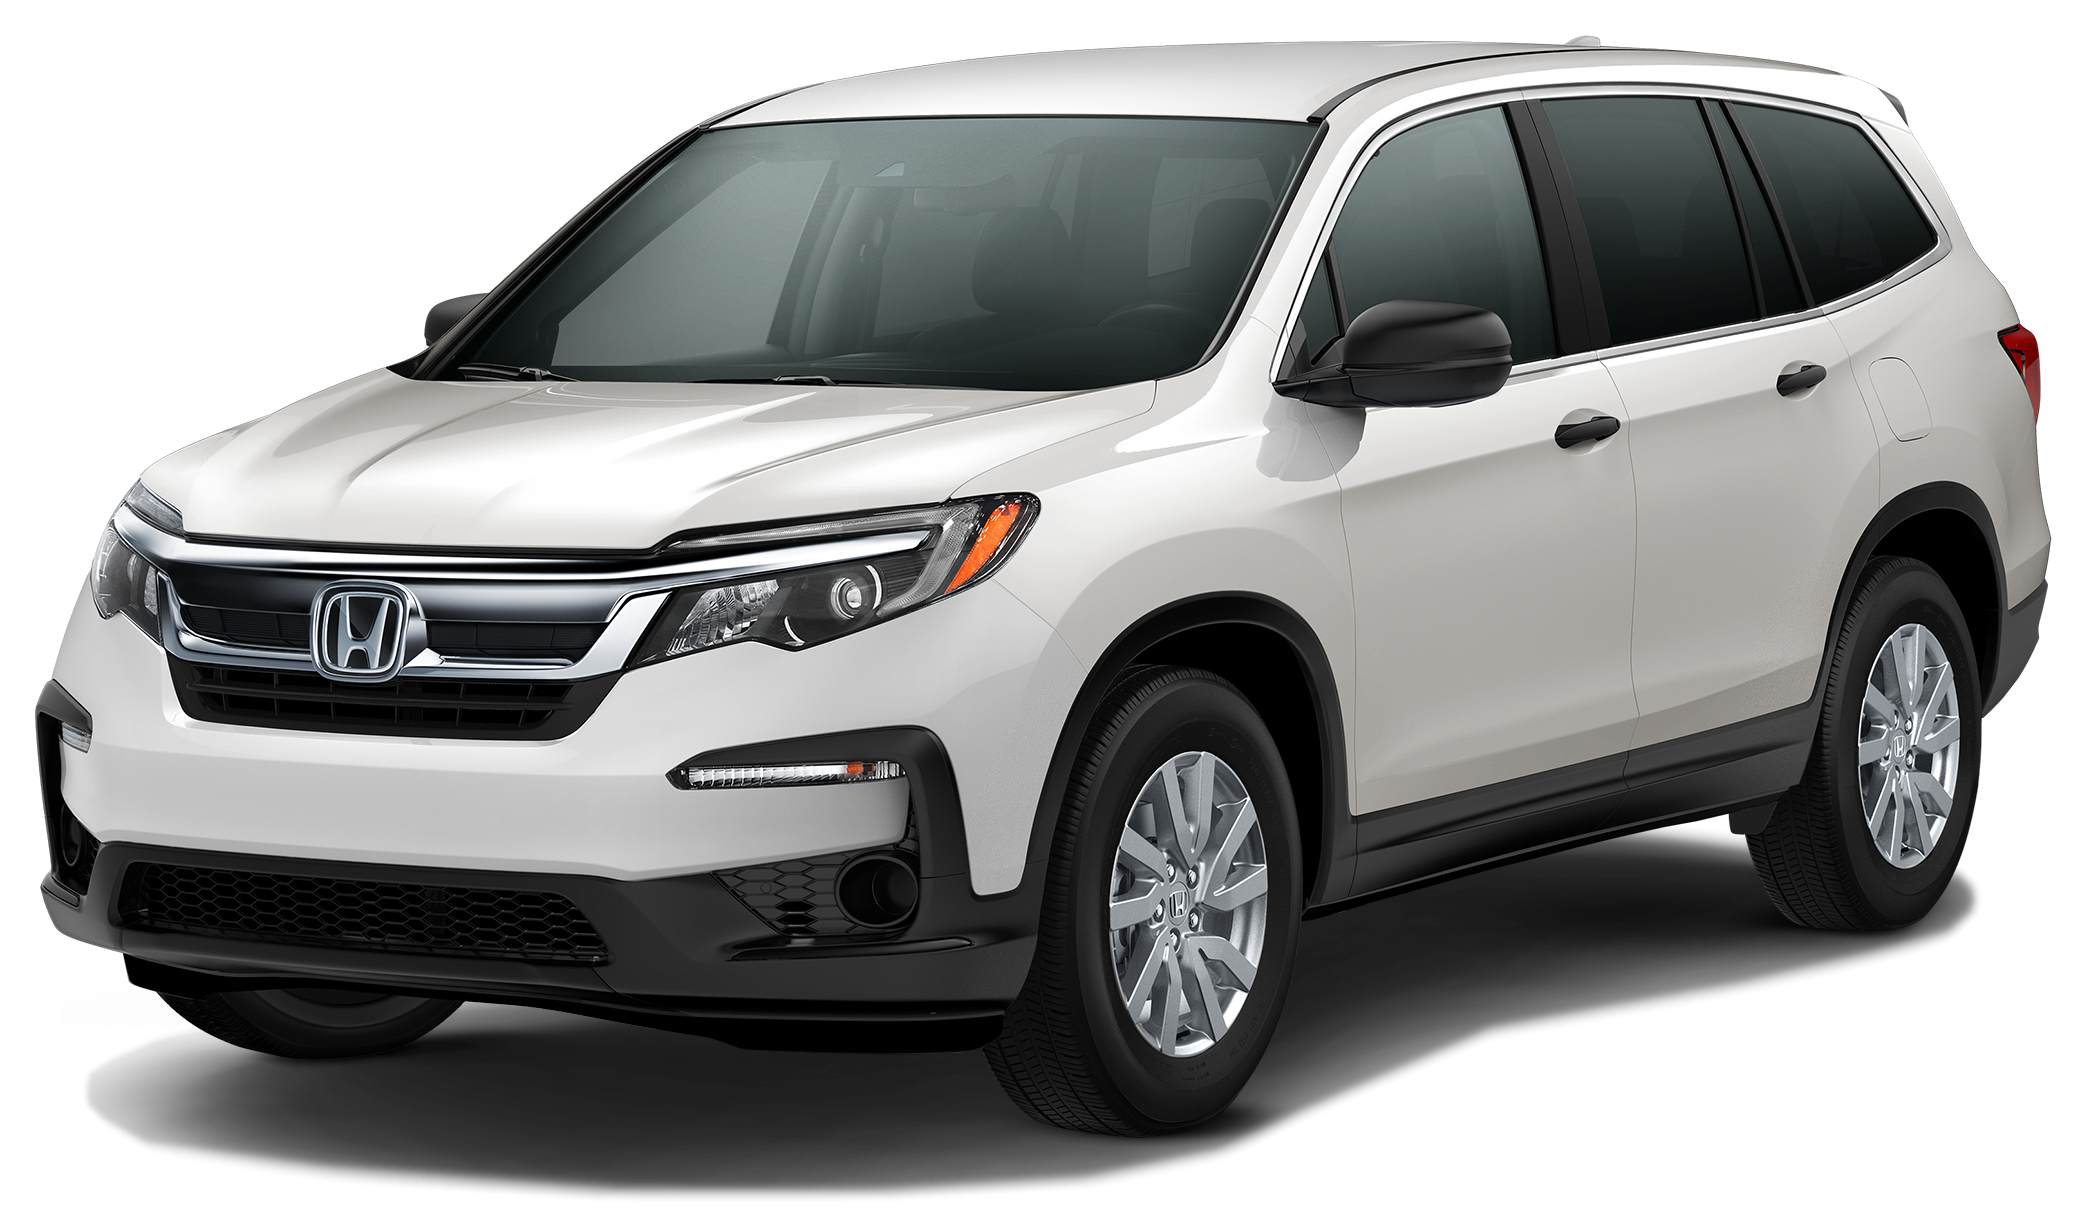 Brownu0027s Arlington Honda | Honda Dealer In Northern Virginia